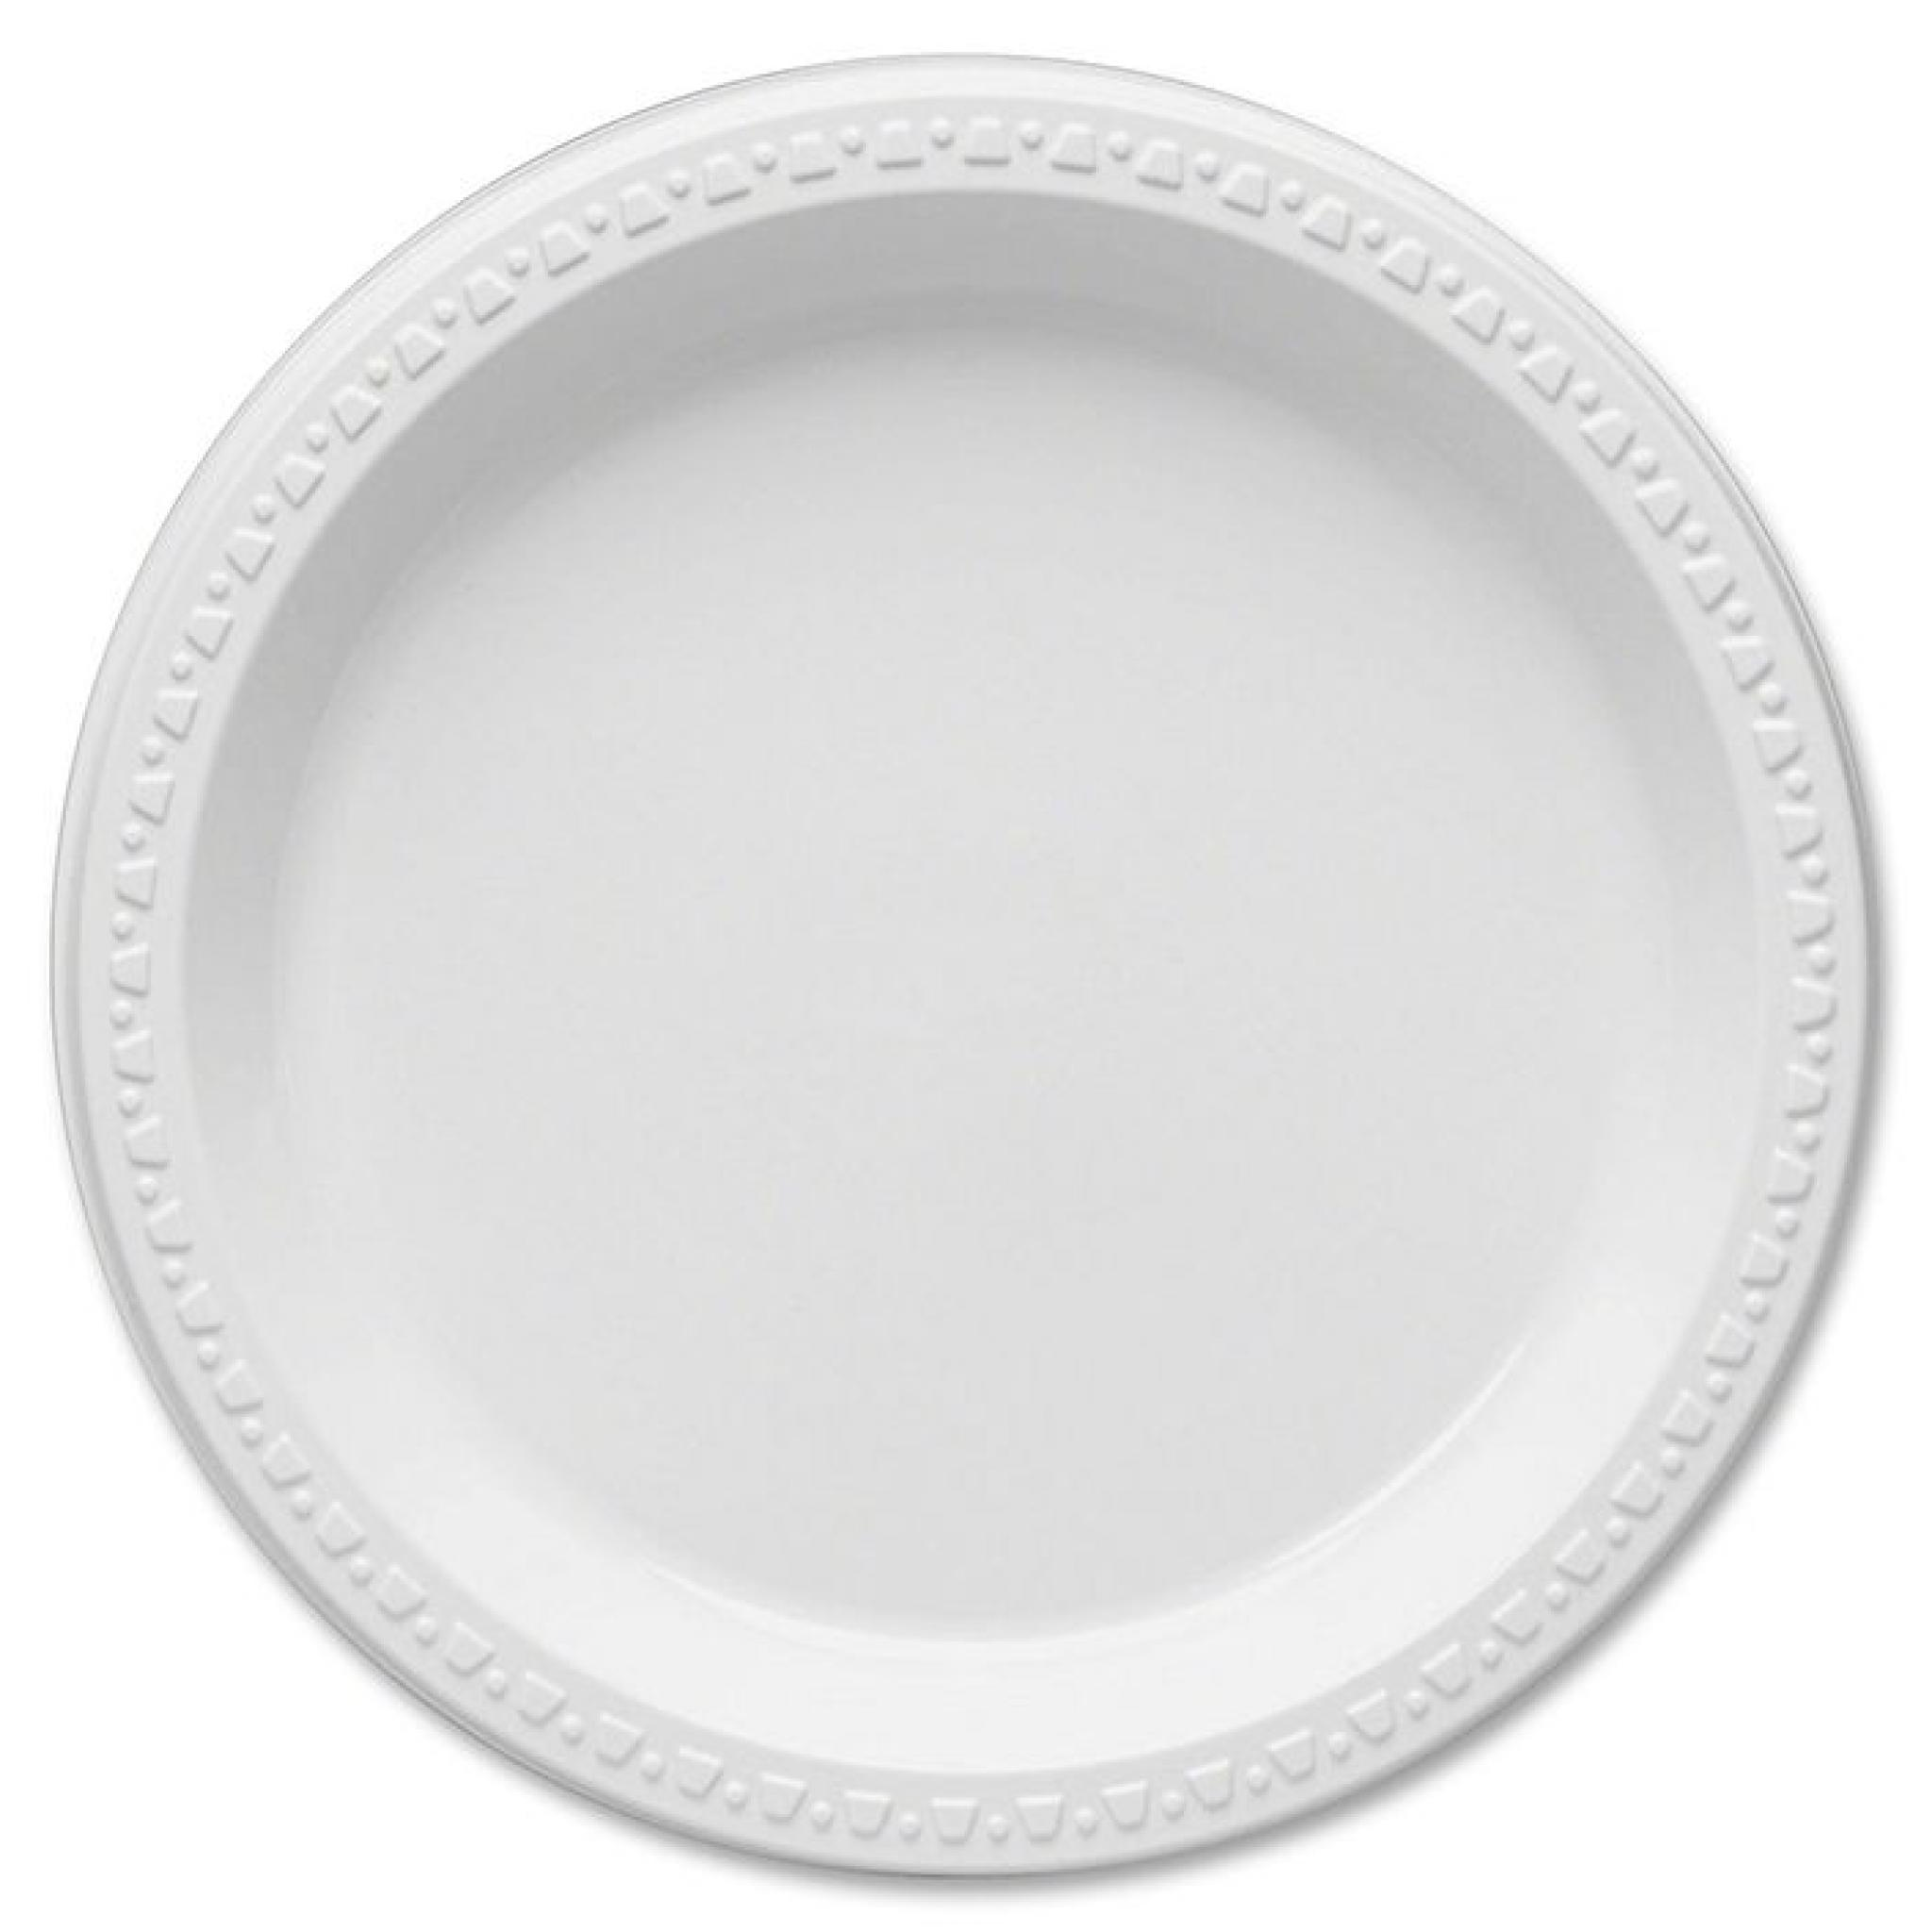 """10 White Round 10/"""" Salad Plates Gold Trim Wedding Catering Disposable Supplies"""